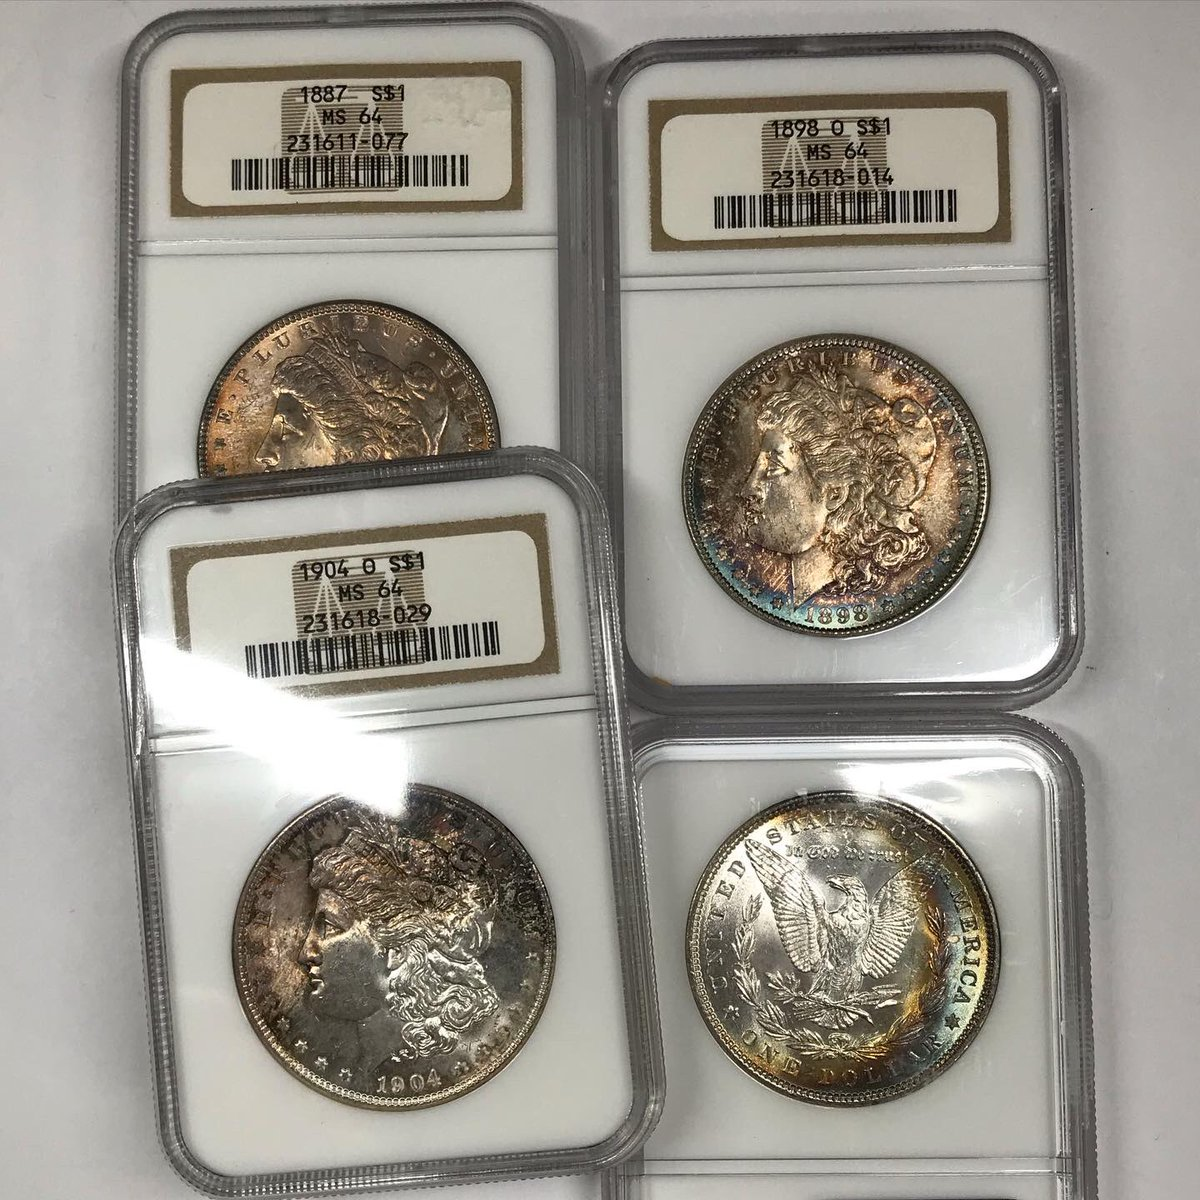 Old Pueblo Coin On Twitter A Hoard Of Ms64 Morgan Dollars Recently Came In The Shop They Re Mostly All Common Date But A Handful Have Some Cool Toning Going Up As